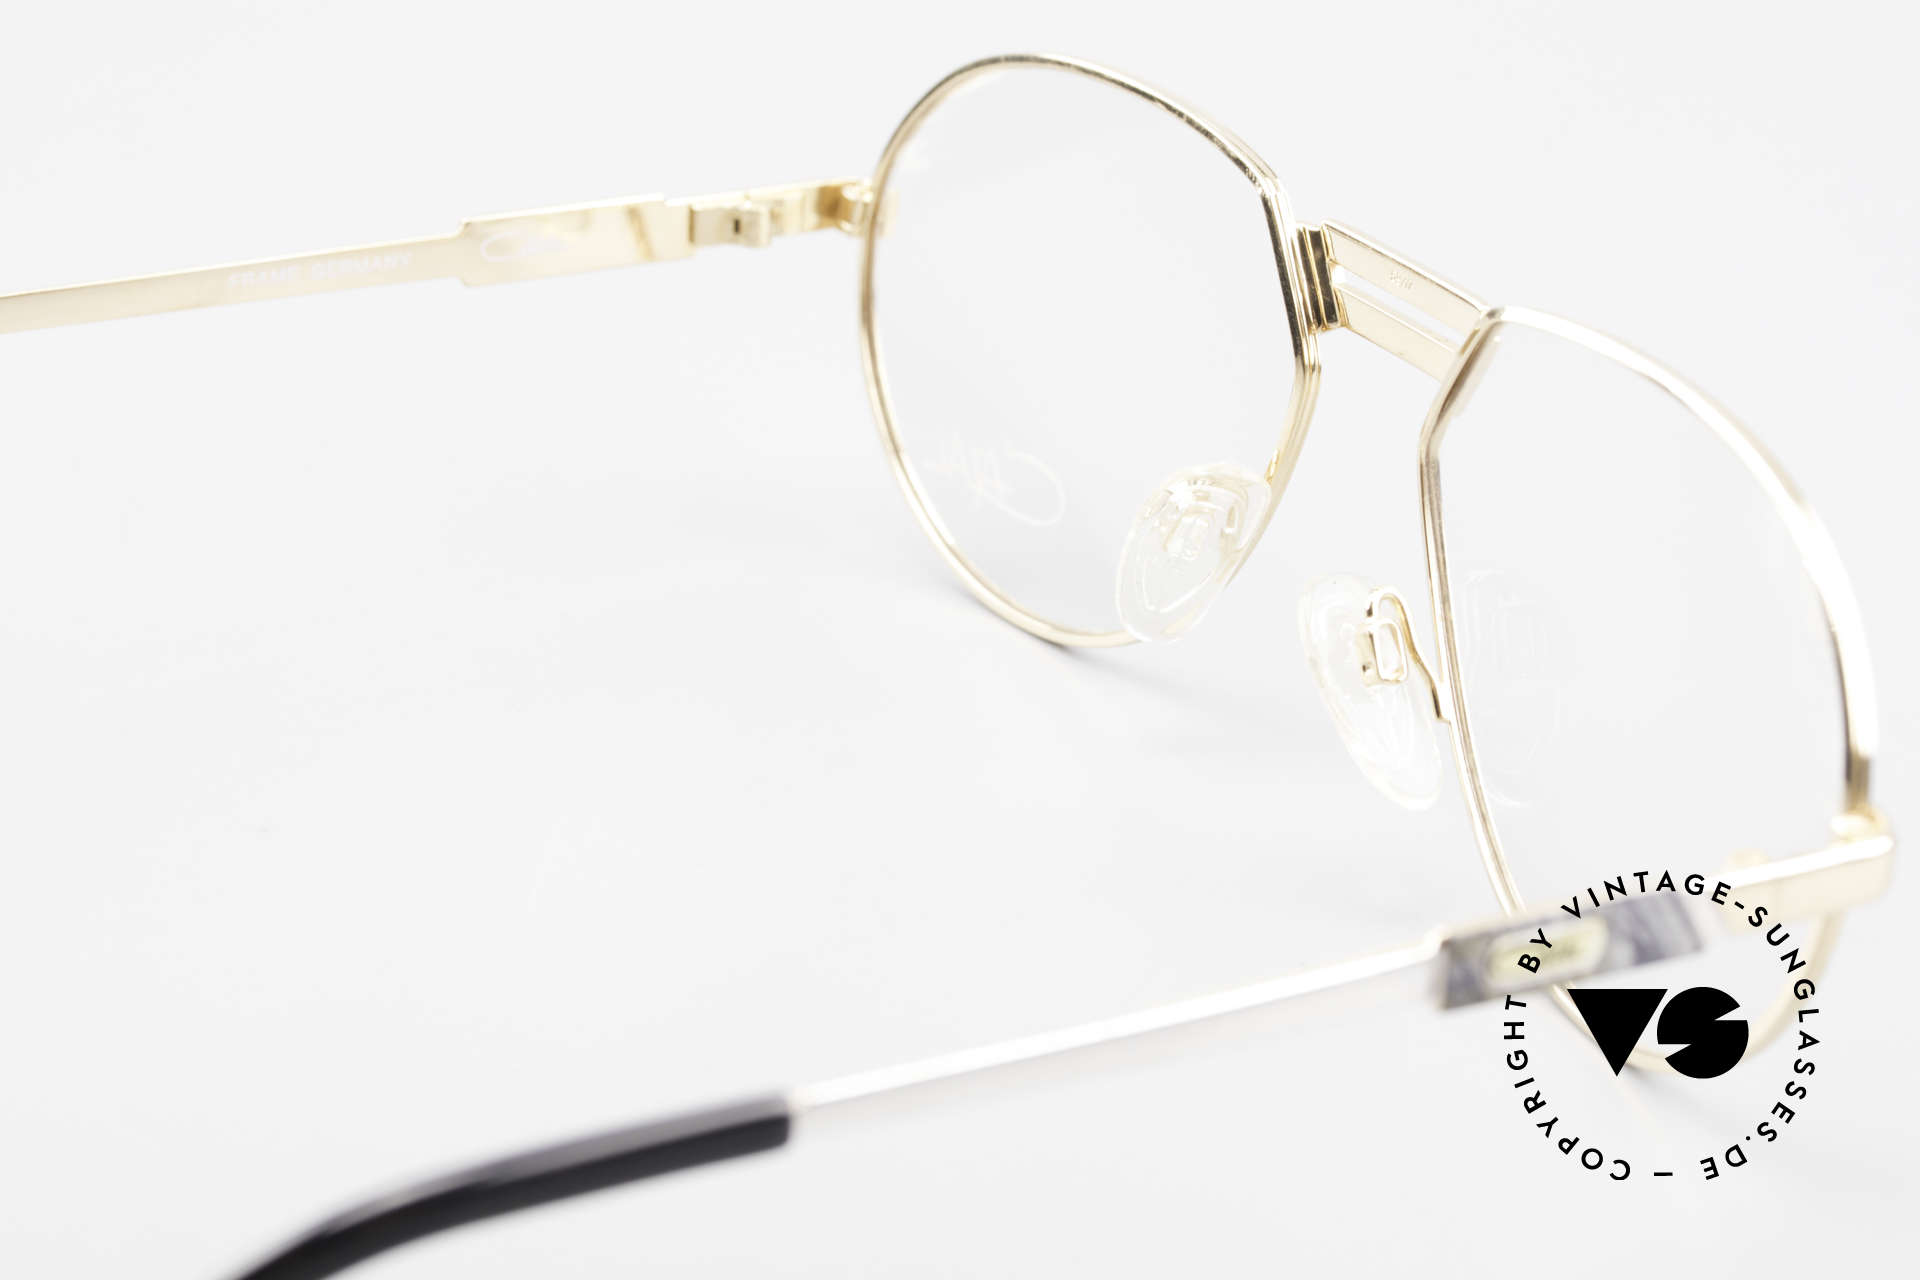 Cazal 739 Gold Plated Eyeglass-Frame, demo lenses can be replaced optionally, size 59/17, Made for Men